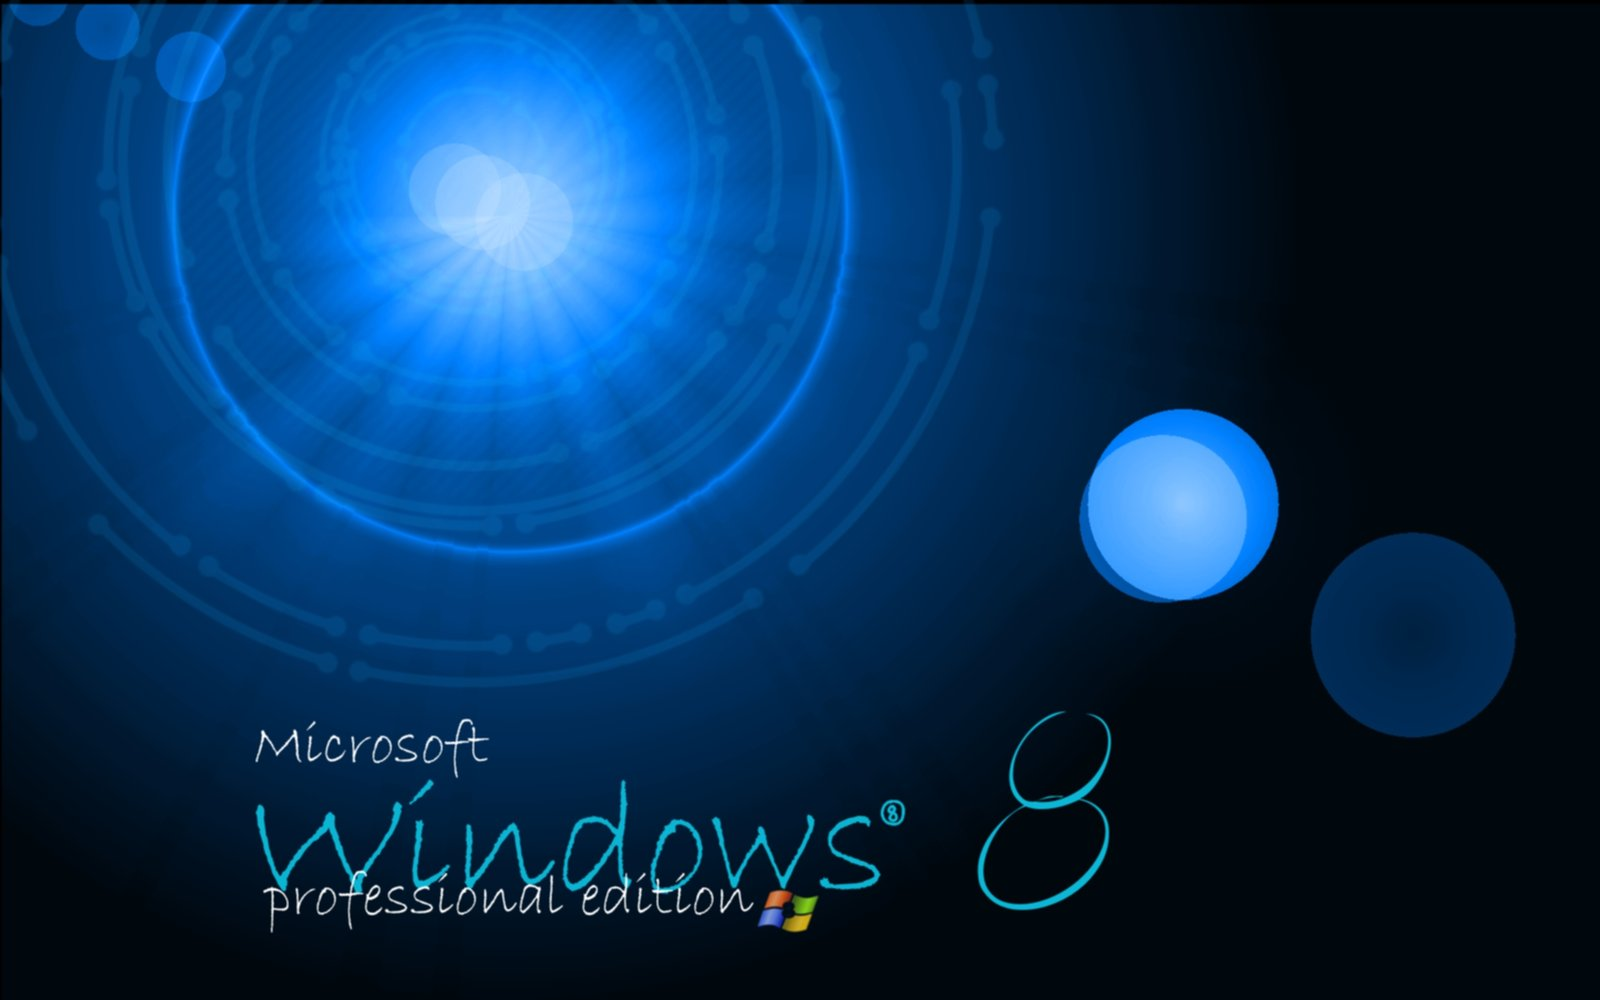 Windows 8 Wallpapers Release: HD Wallpapers Of Windows 8